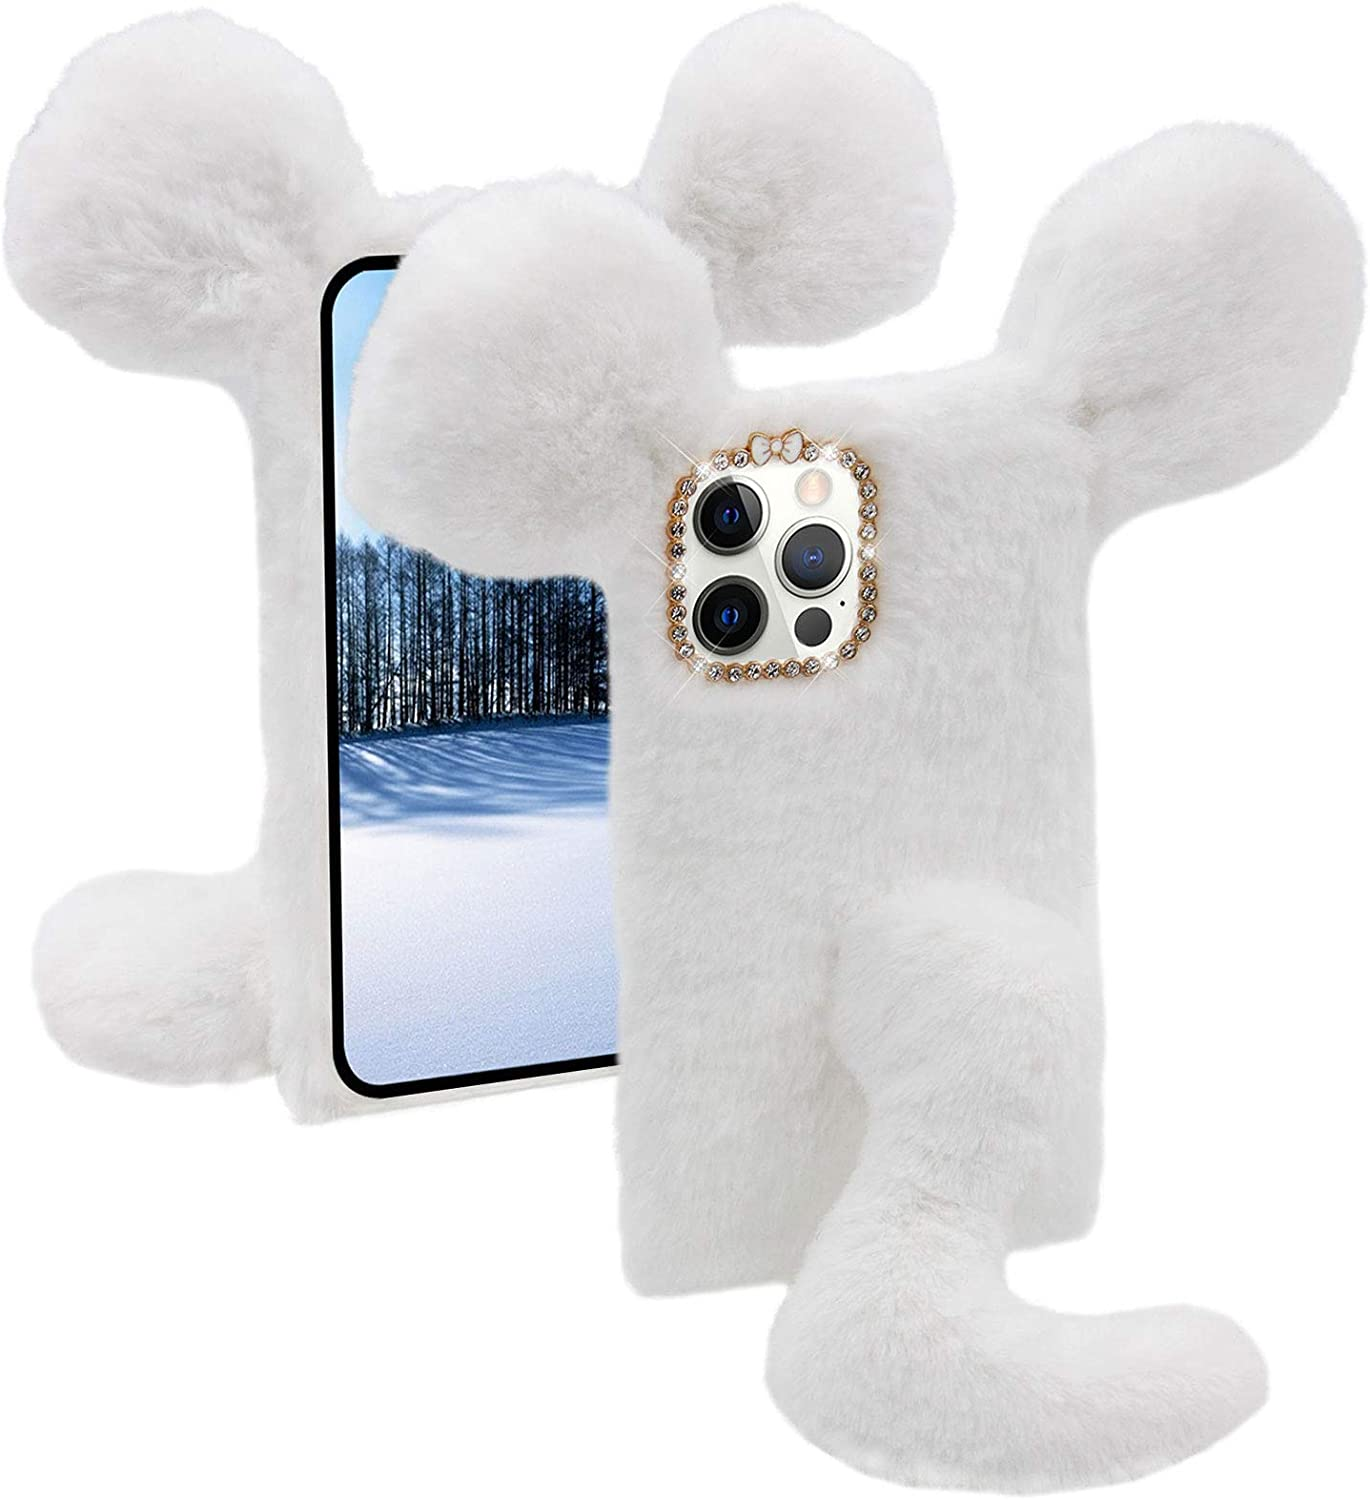 Soft Fluffy Furry Mouse Case for Google 4a with Pixel MOIKY 25% OFF 5G Mail order S